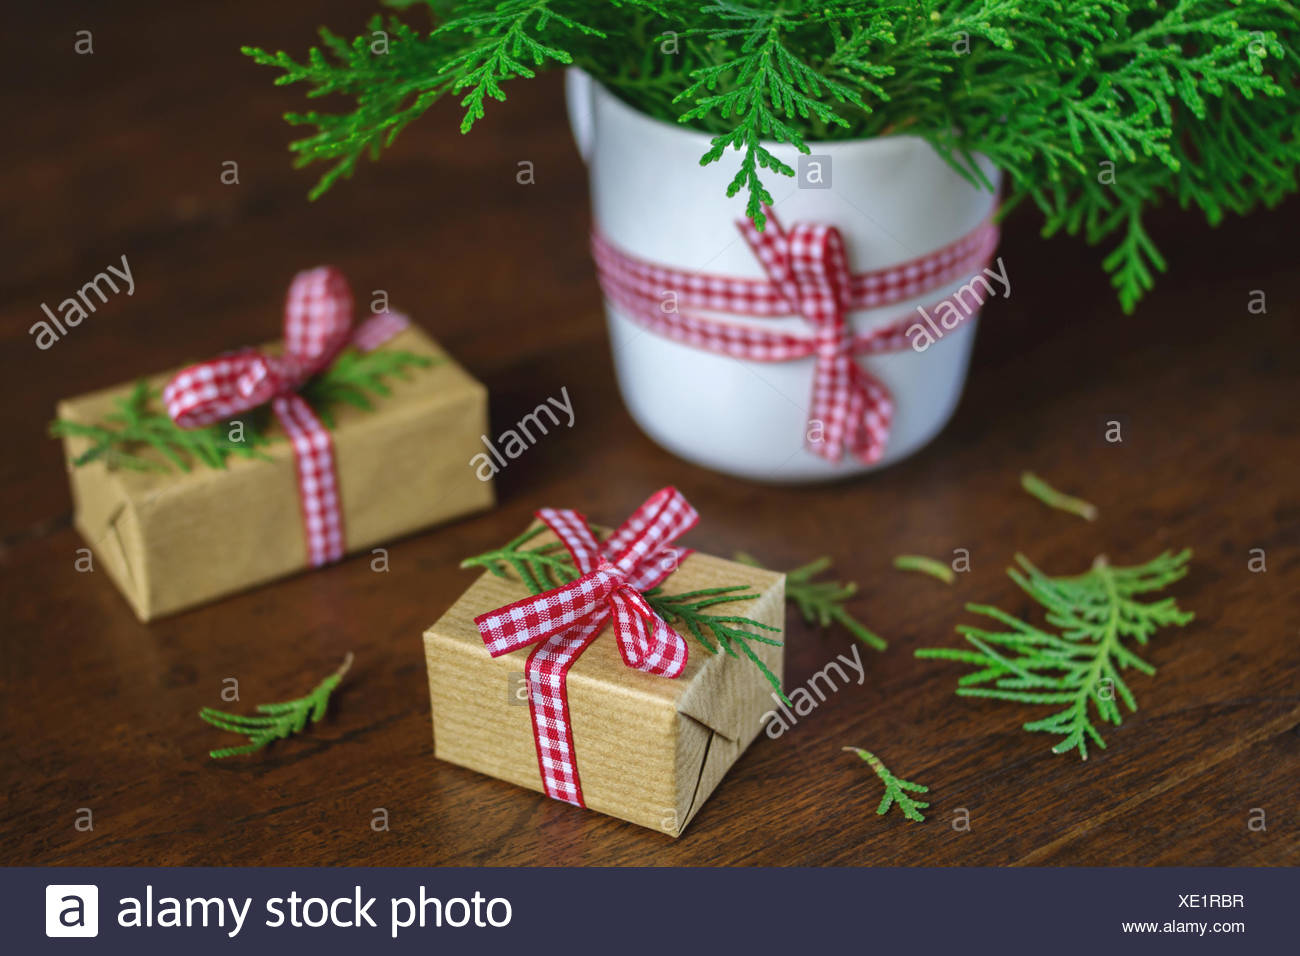 christmas gift boxes decorated with green juniper - Decorative Christmas Gift Boxes